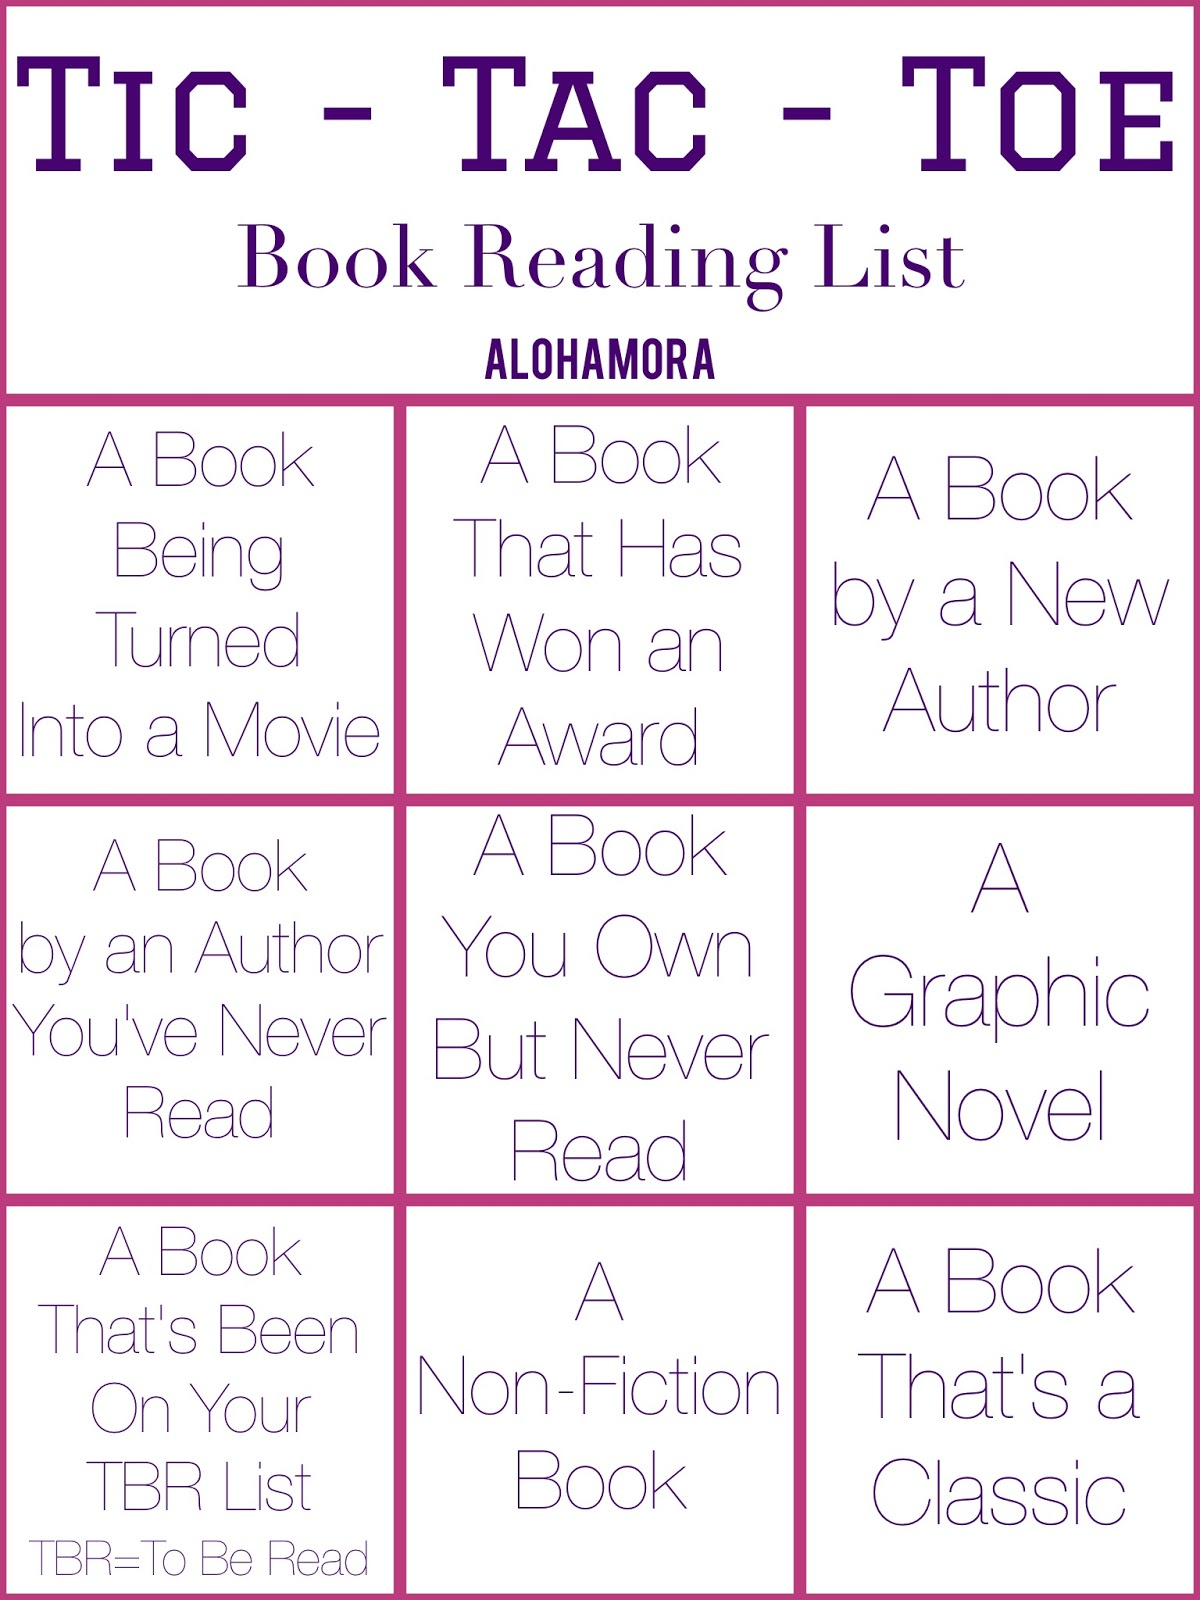 Tic Tac Toe Book Reading List.  A fun way to help you choose which book to read.  Teachers can use this as a way to get students reading (though they should use the blank one and fill it in with what works best for them. Alohamora Open a Book http://alohamoraopenabook.blogspot.com/